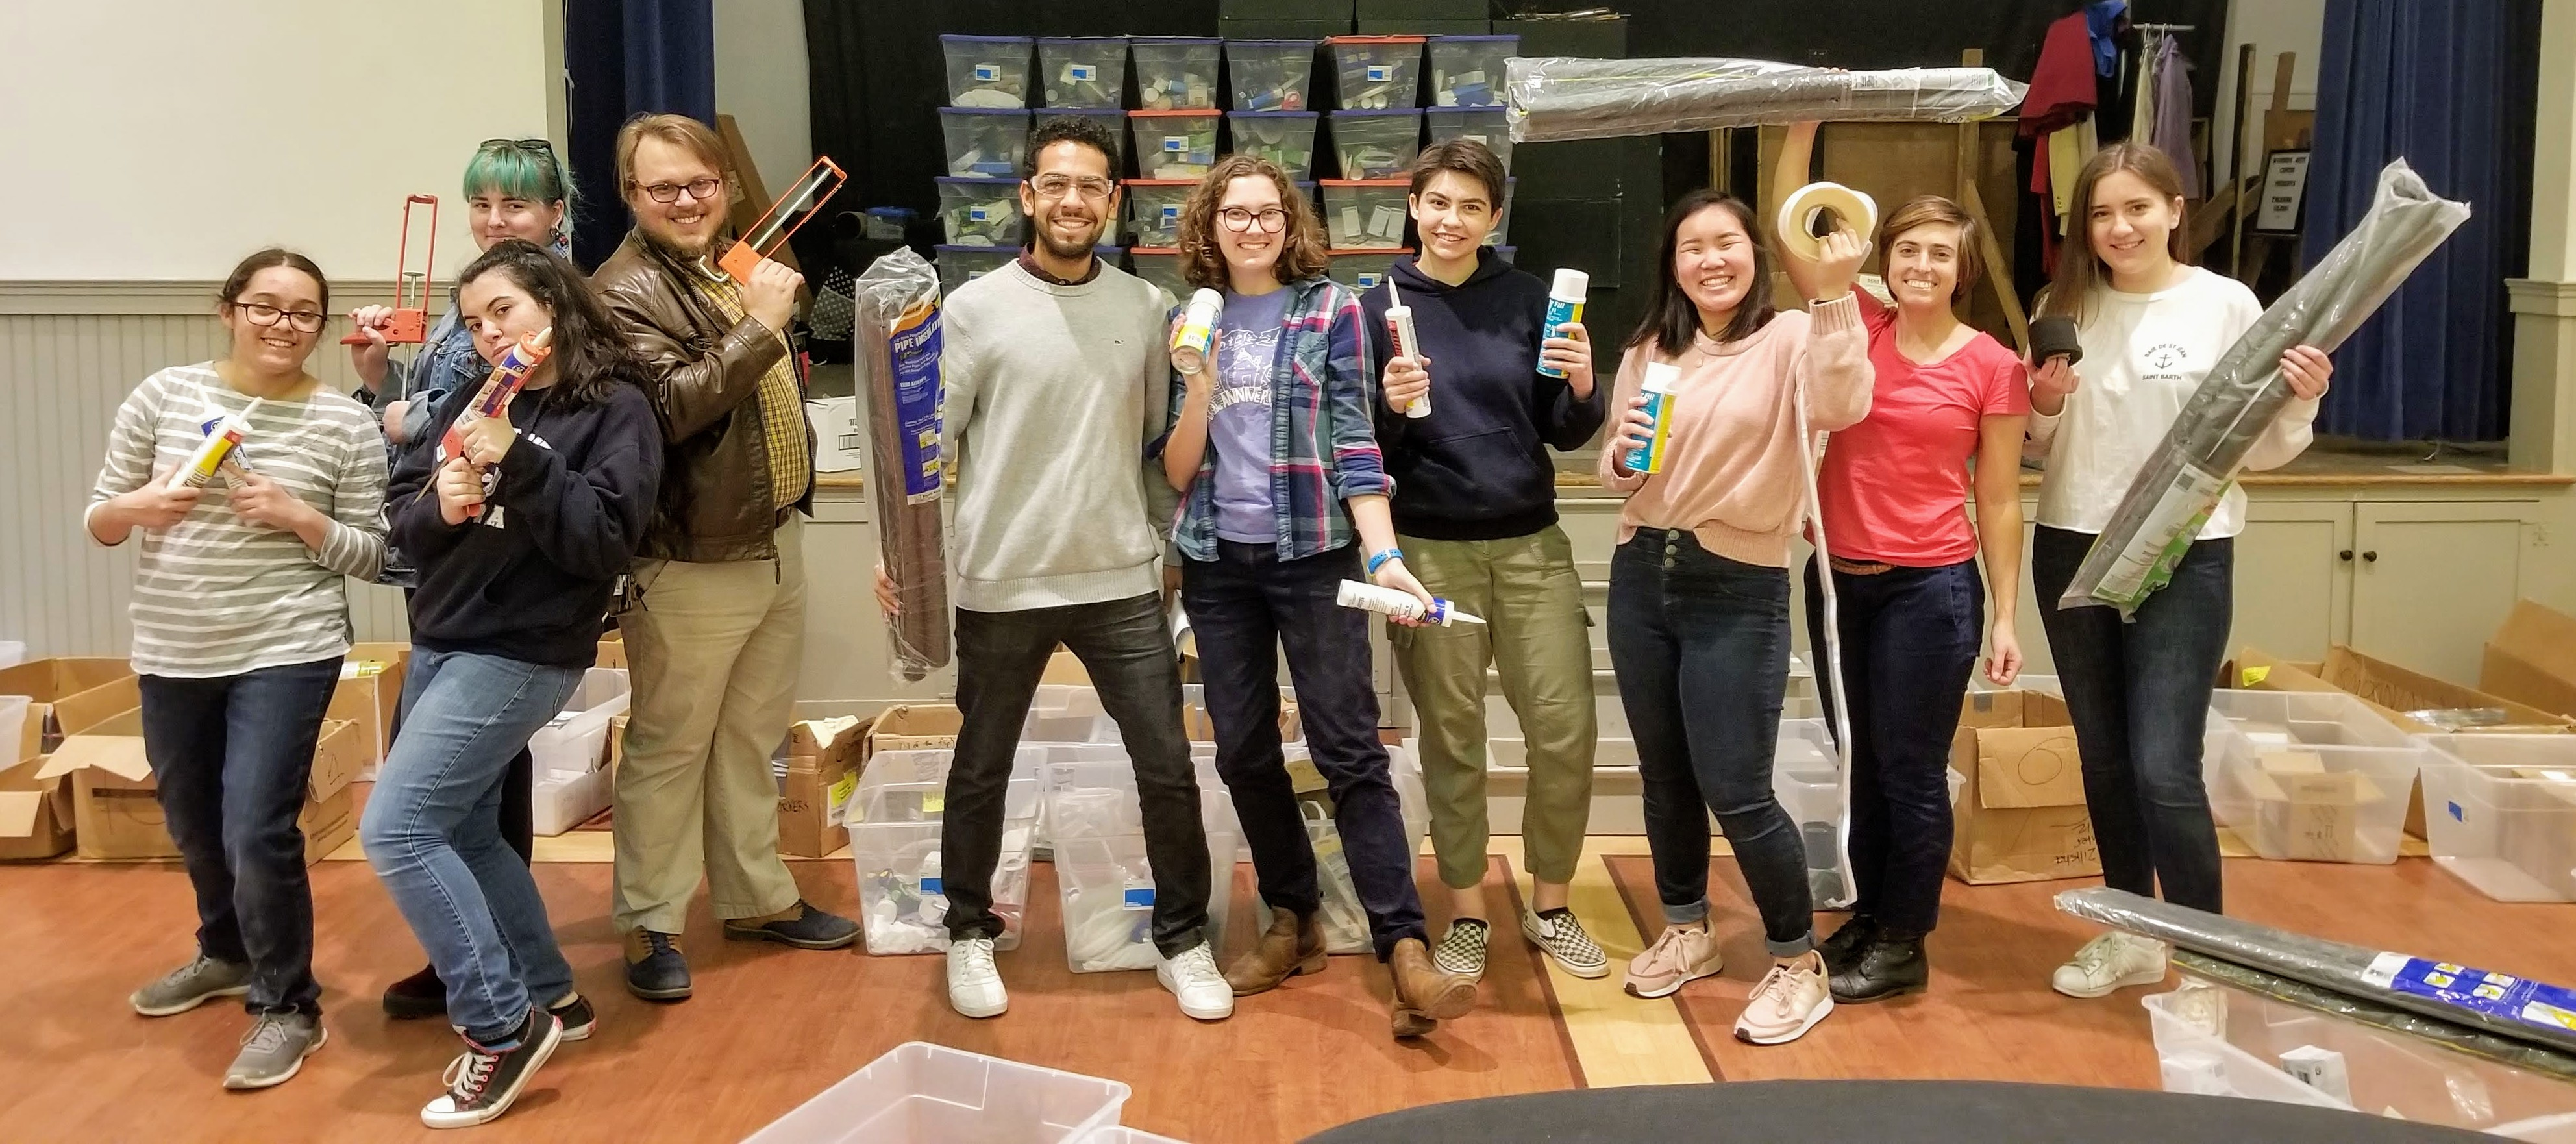 Students posing for a photo as part of the Winter Blitz home weatherization day.